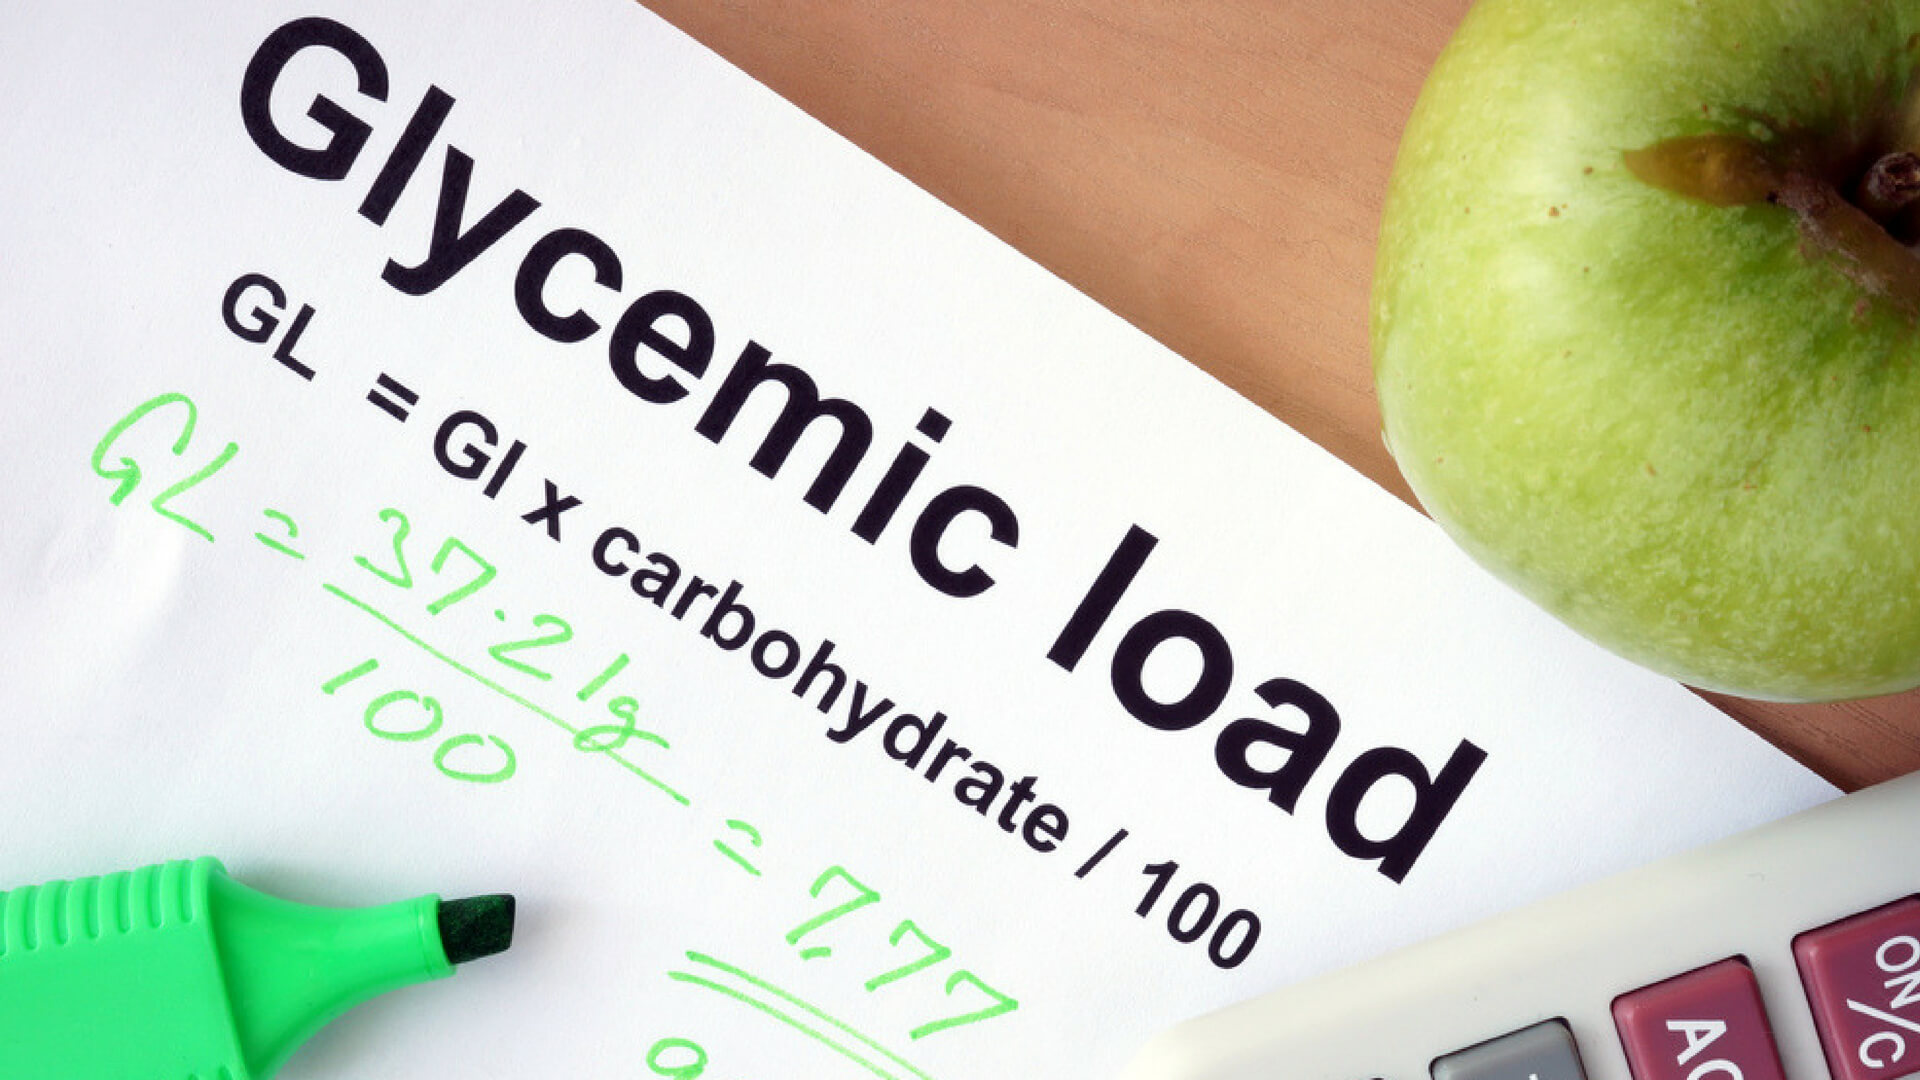 Glycemic load and glycemic index - what are they and why they matter